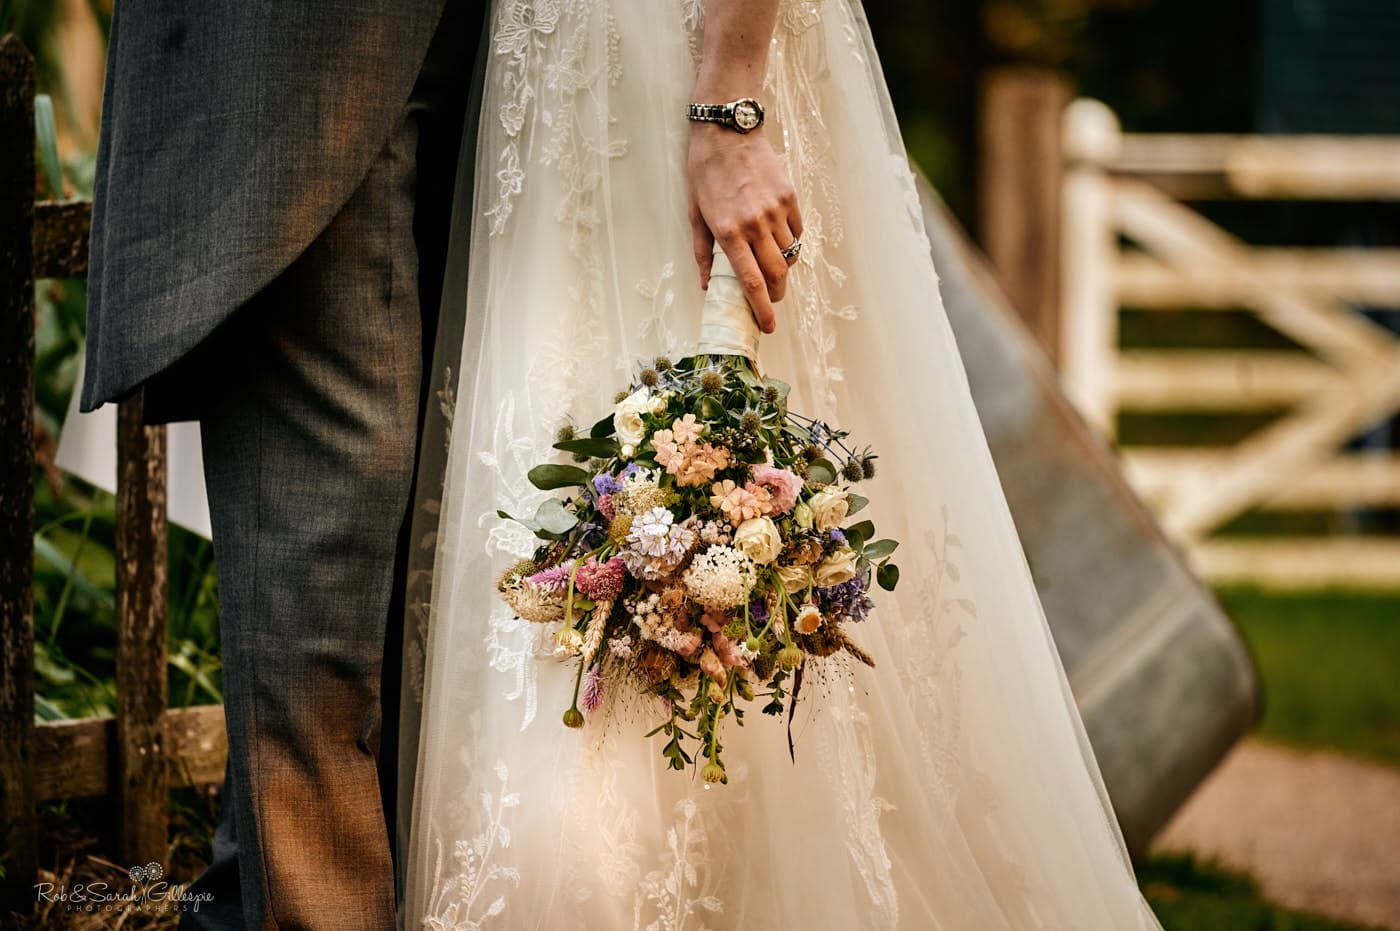 Detail of wedding bouquet. Avoncroft Museum wedding photographers Rob & Sarah Gillespie